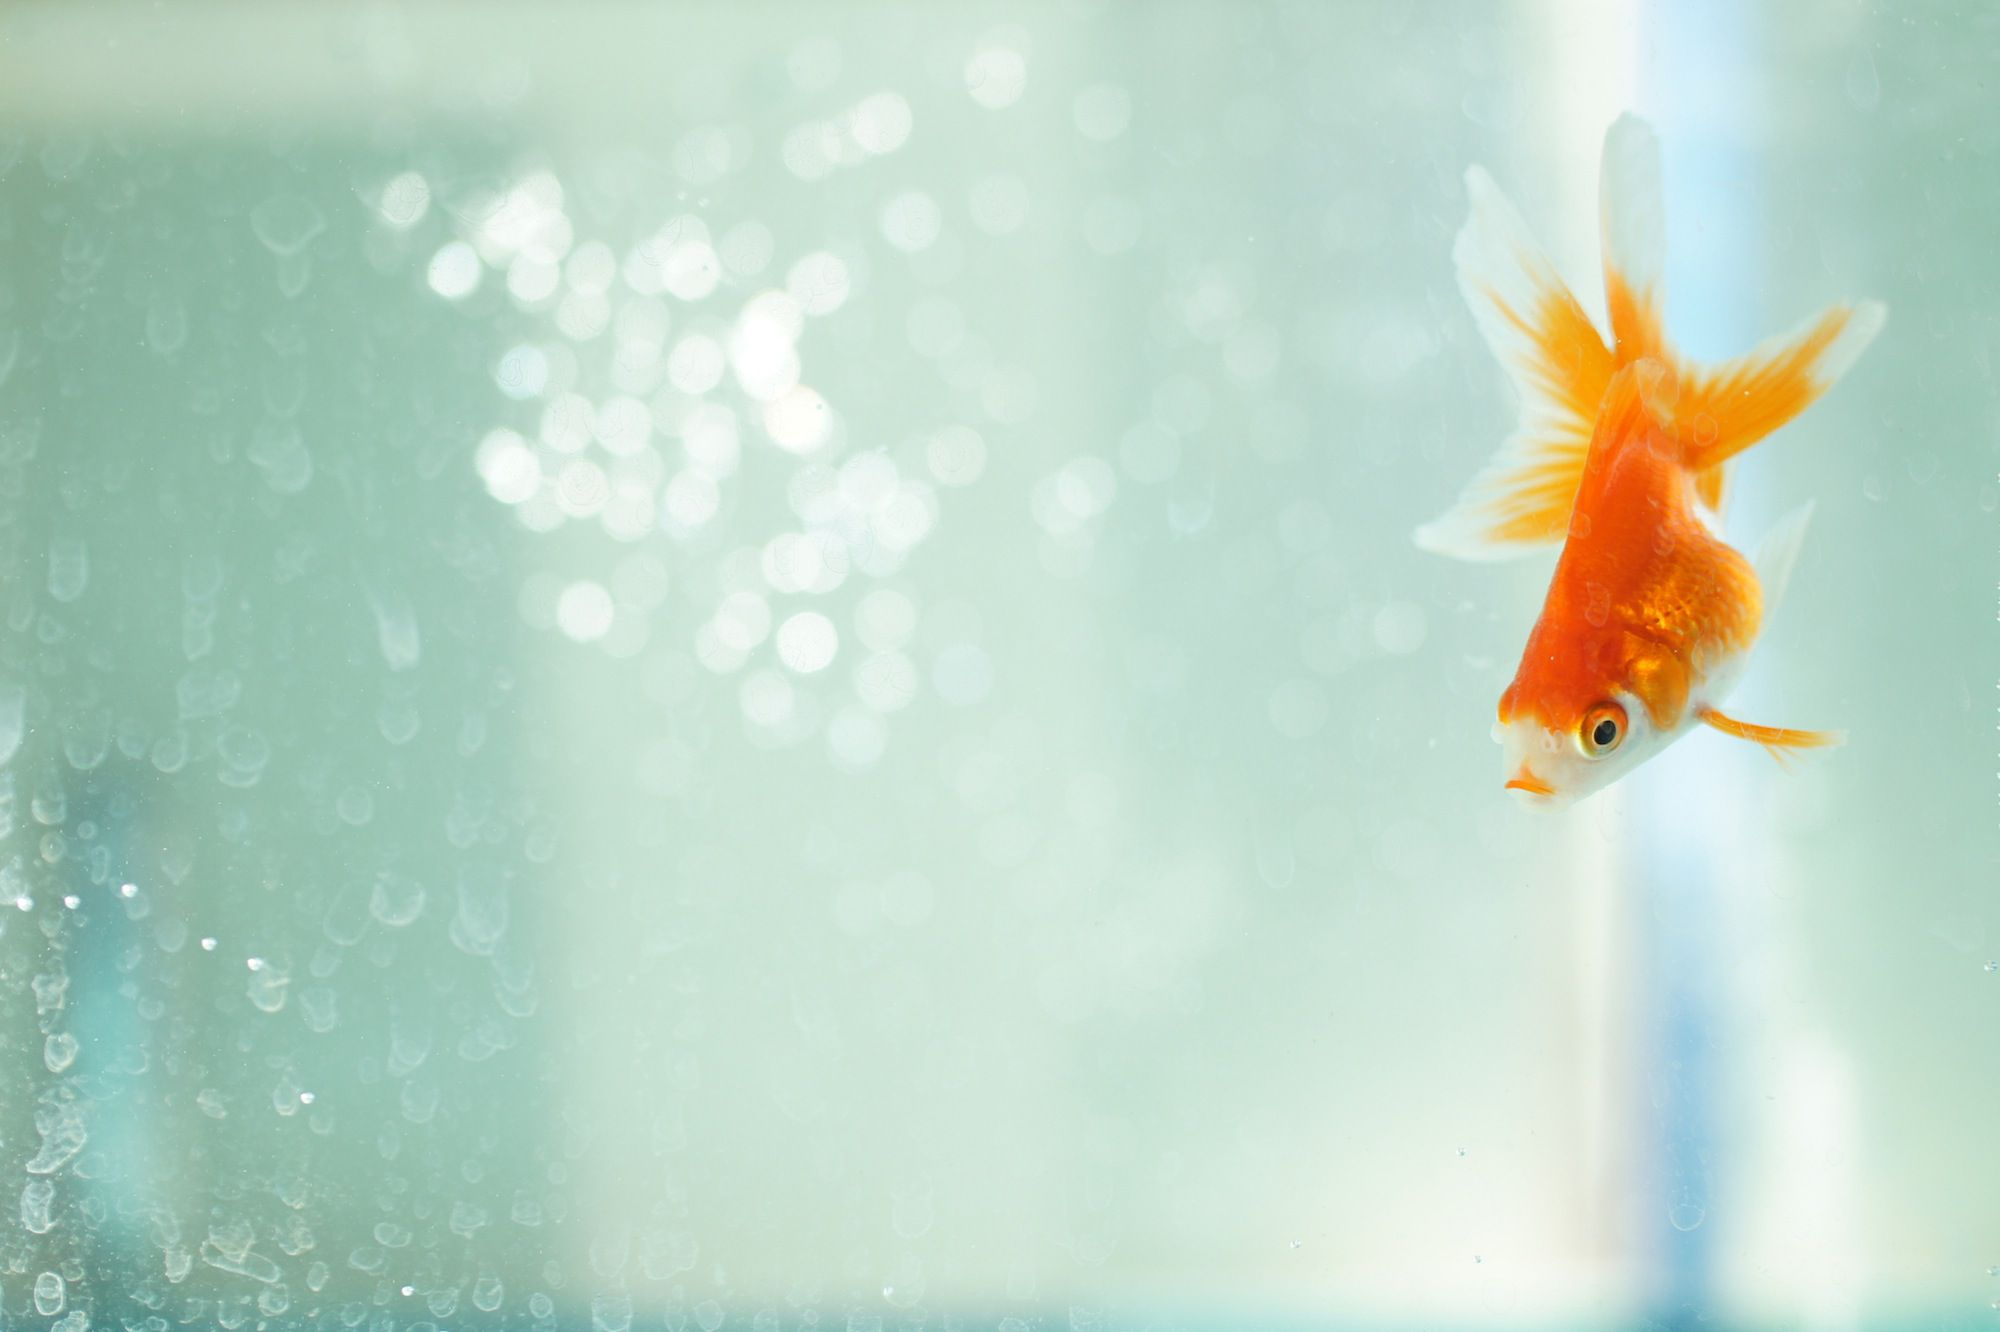 Find out Why a Goldfish Turns White If Left in the Dark